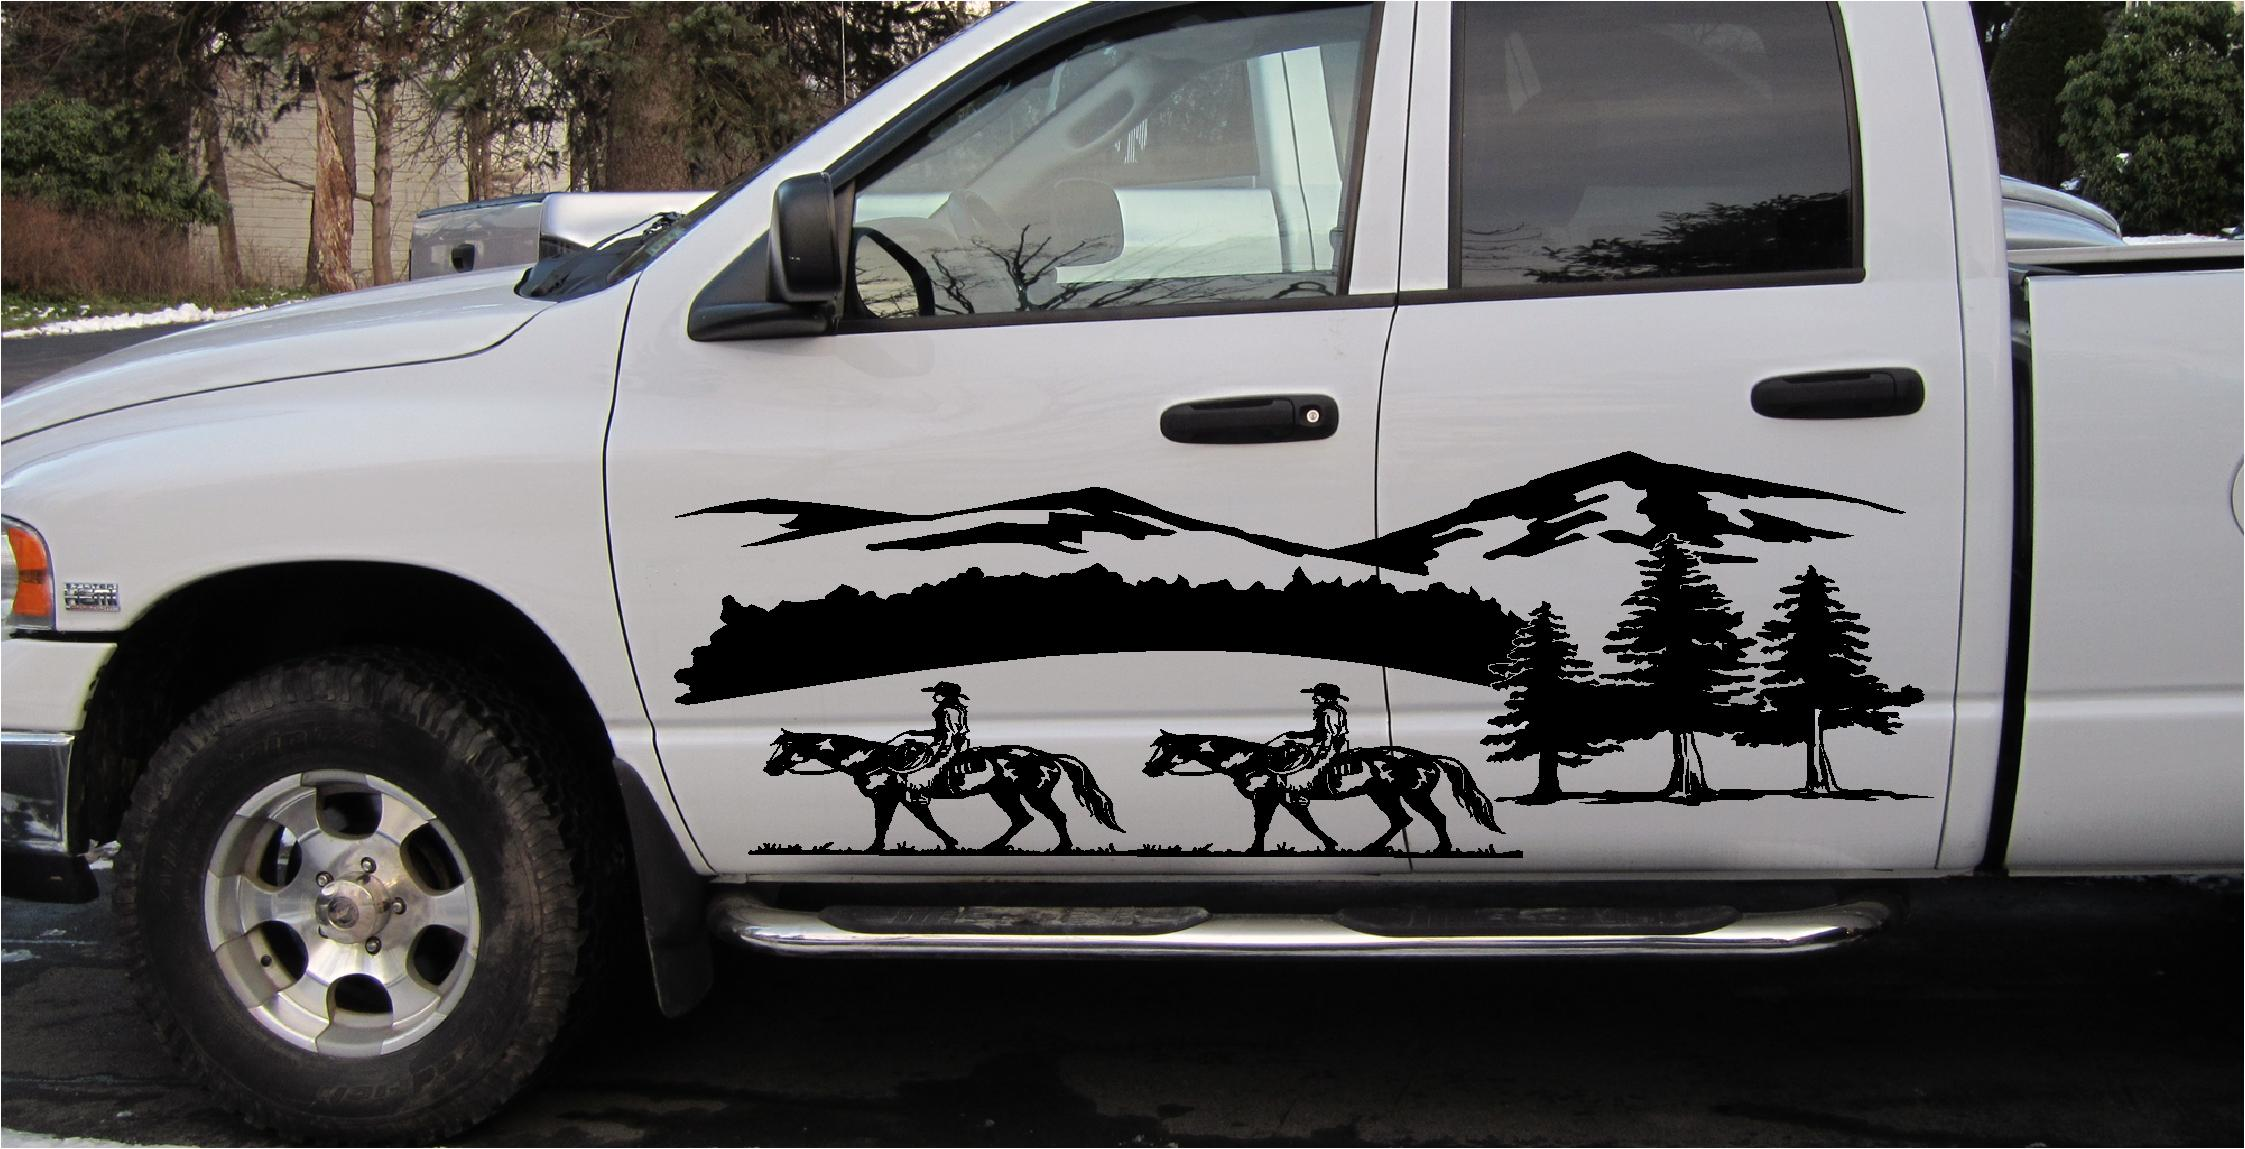 Horse horses cowboy mountains scenery decal decals graphics